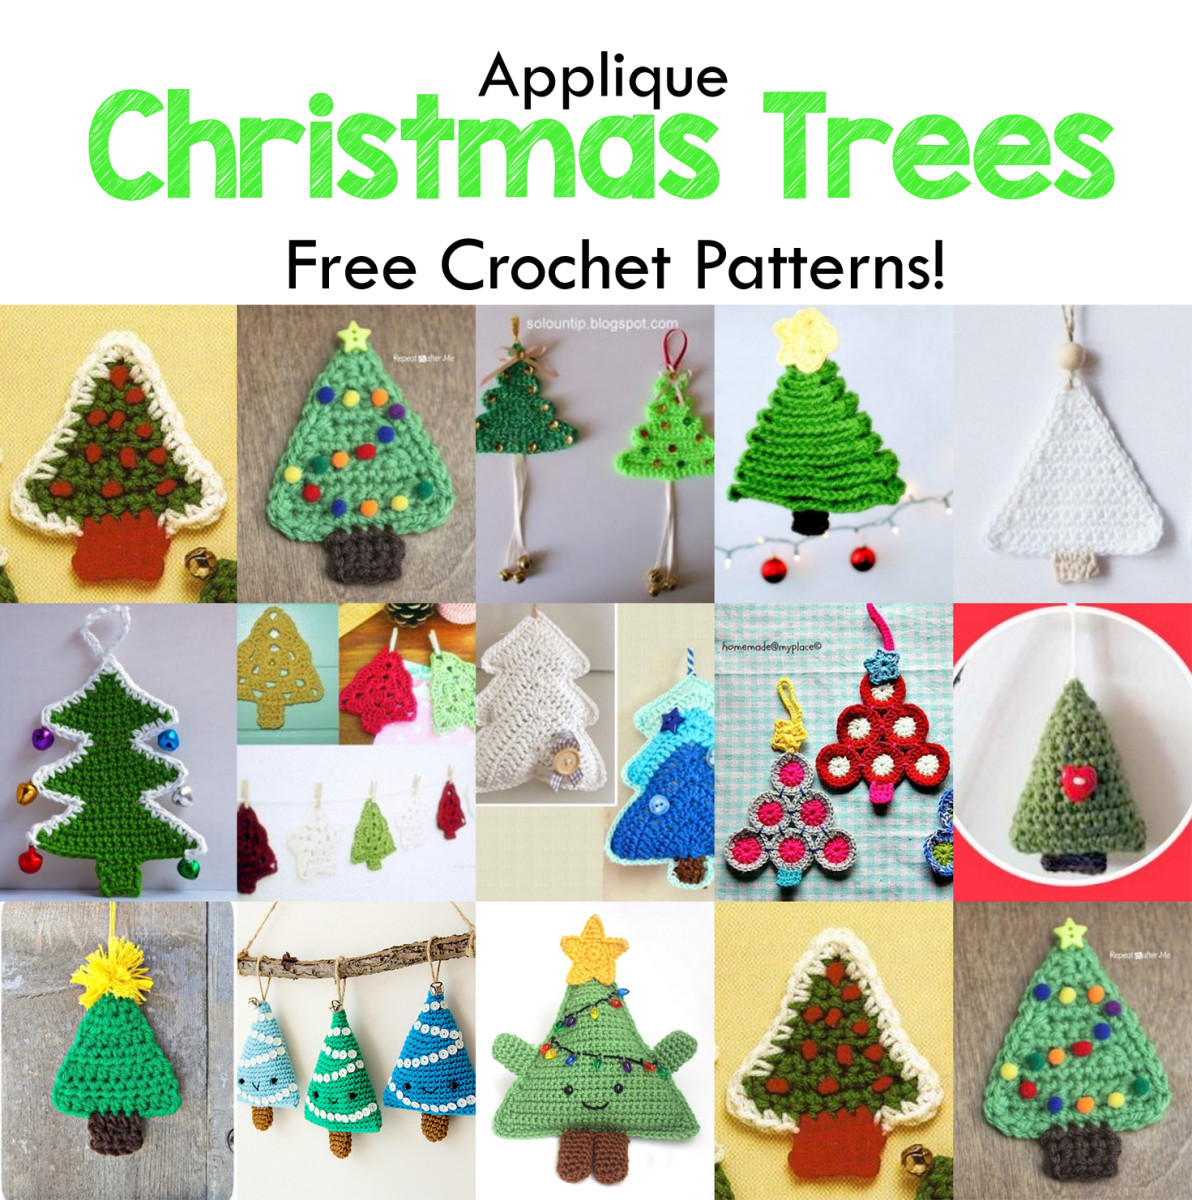 15 Free Christmas Tree Applique Crochet Patterns Hubpages